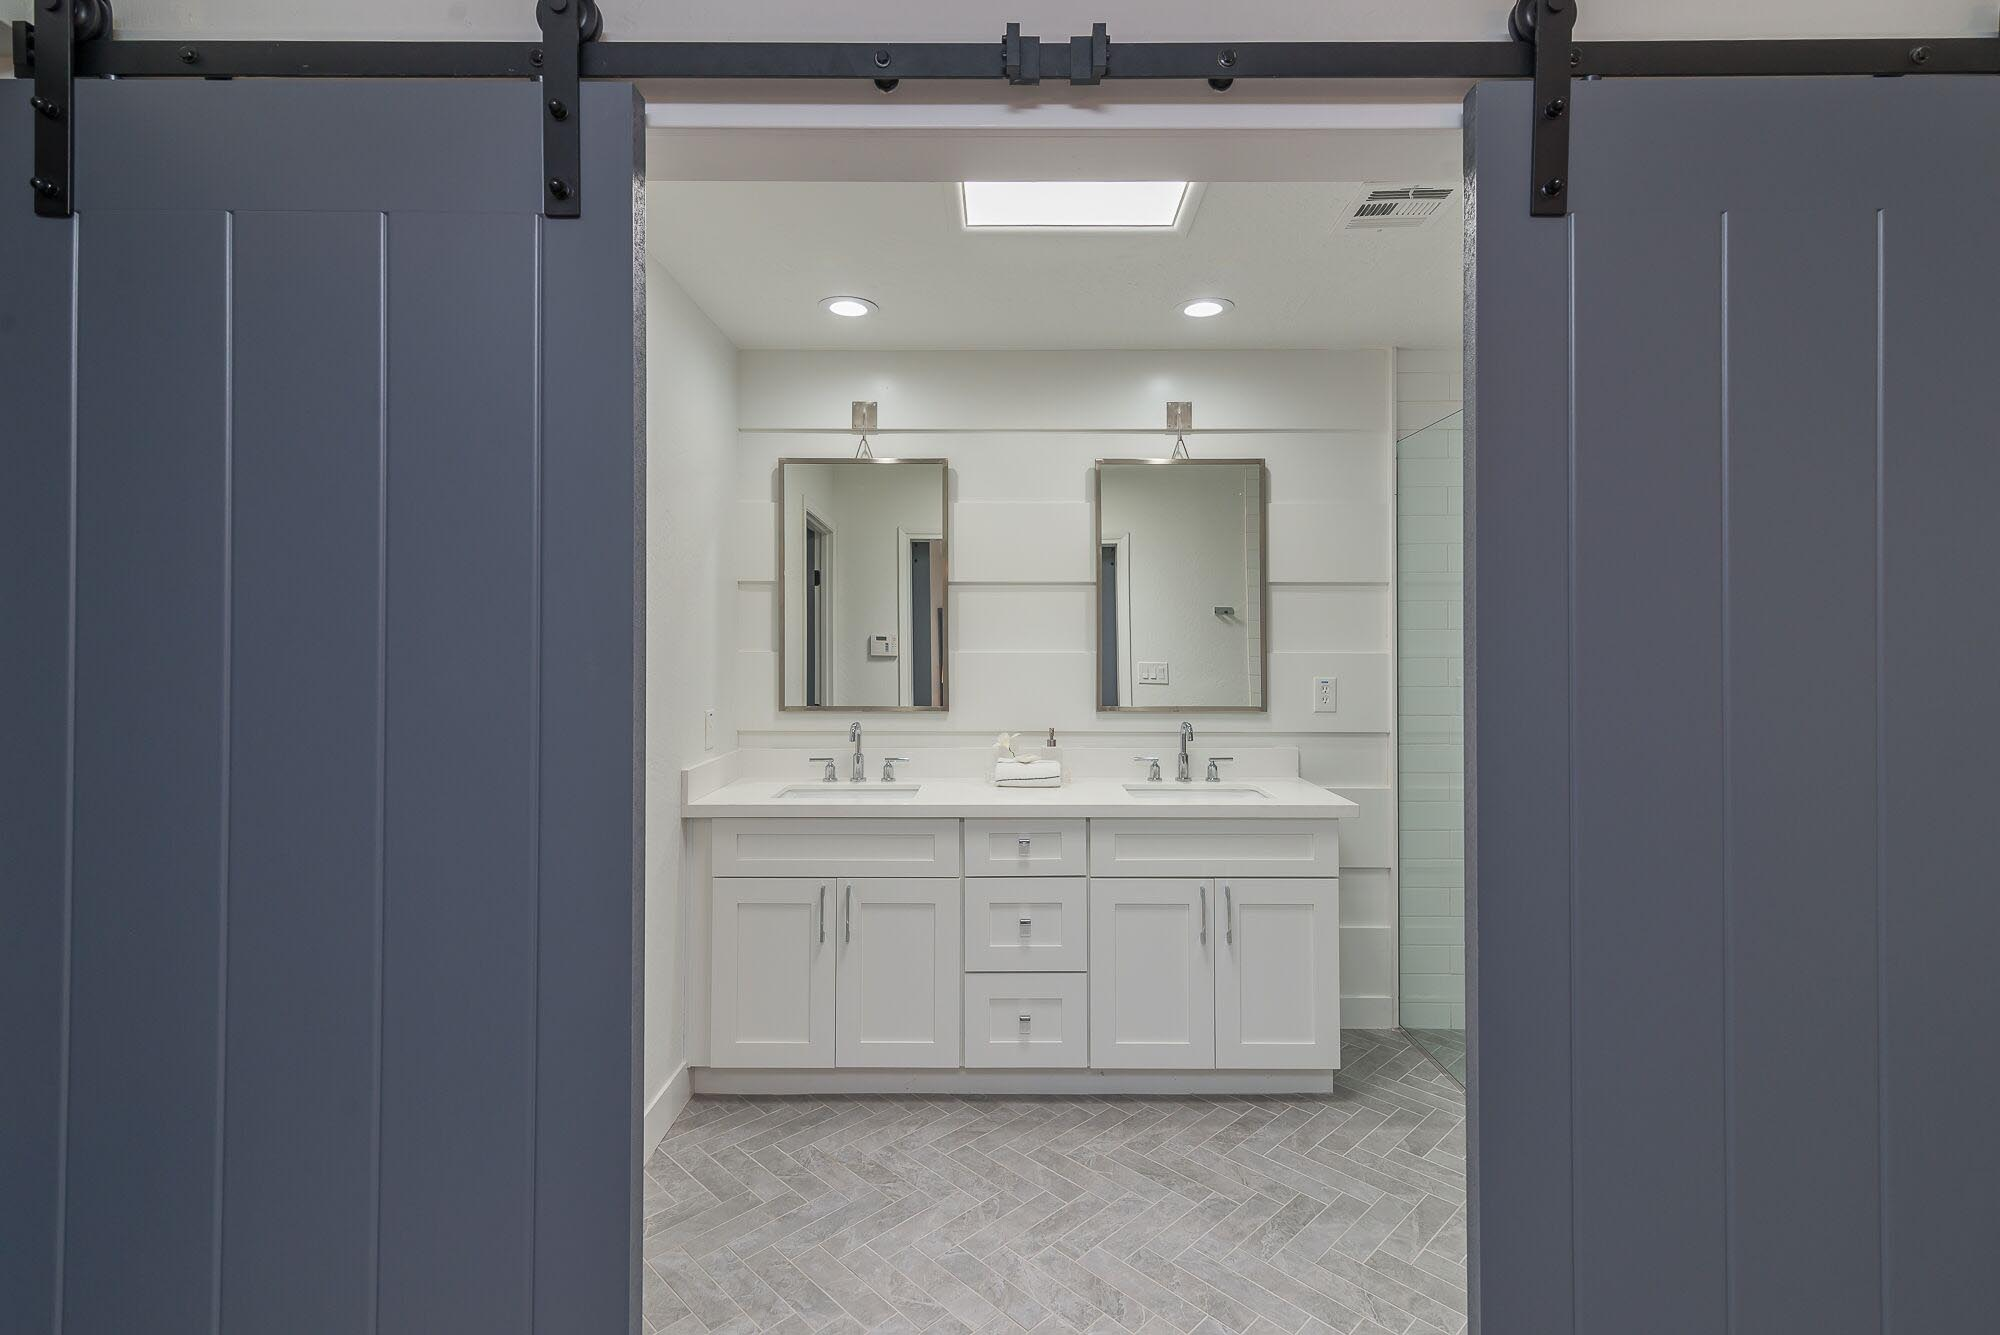 Washroom with white sink cabinets and mirrors